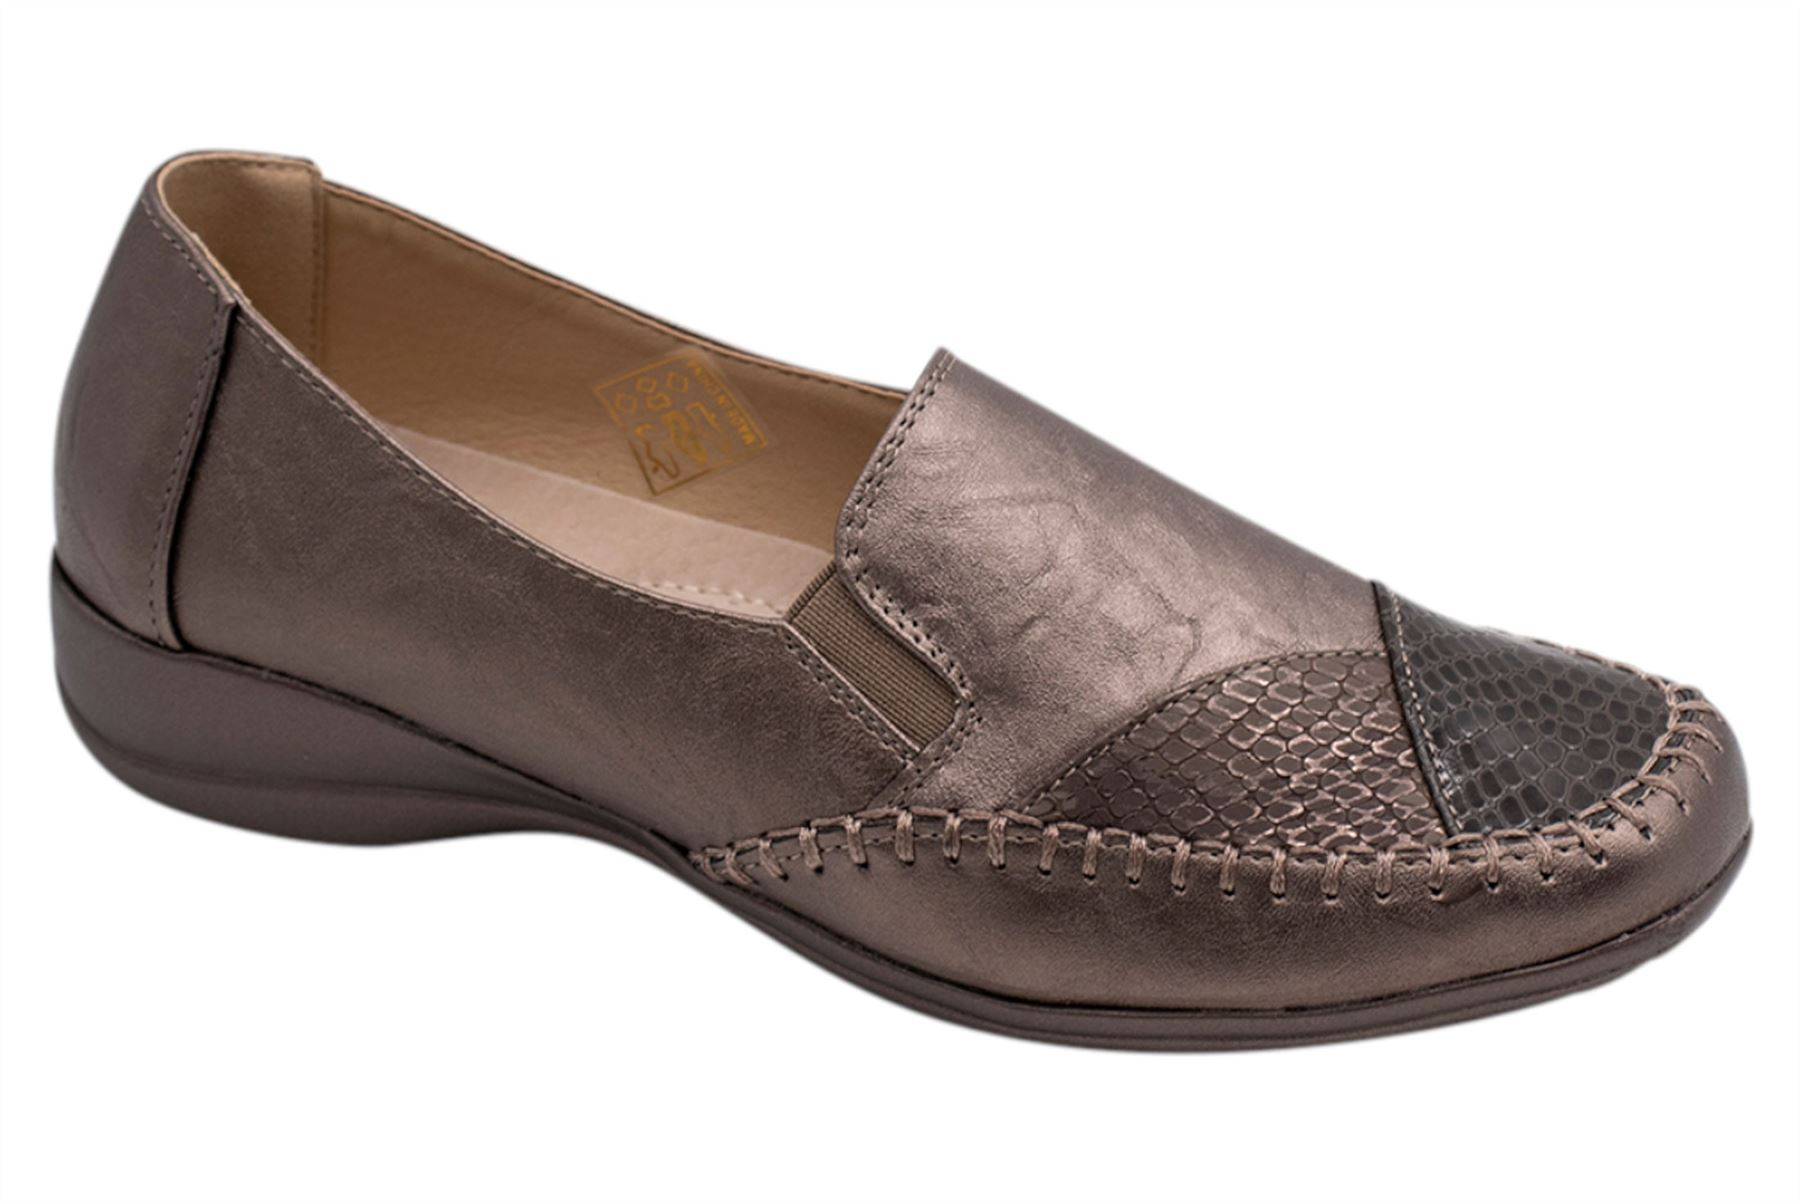 Womens-Flat-Shoes-Ladies-Pumps-Office-Work-Casual-Slip-On-Loafer-Size thumbnail 28